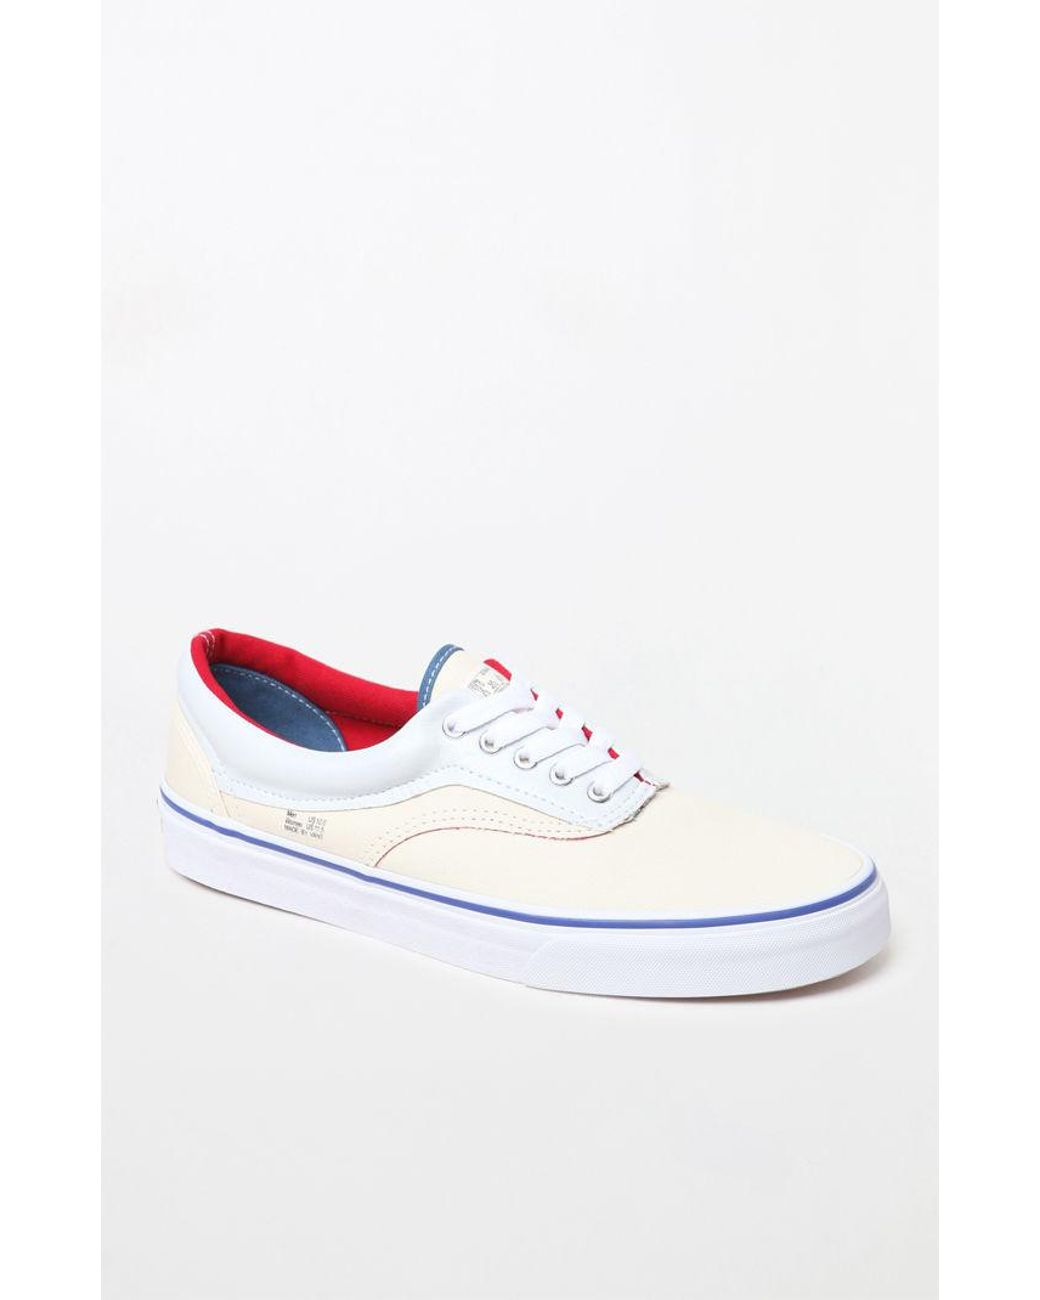 9f8ca2175e Lyst - Vans Outside In Era Shoes in Natural for Men